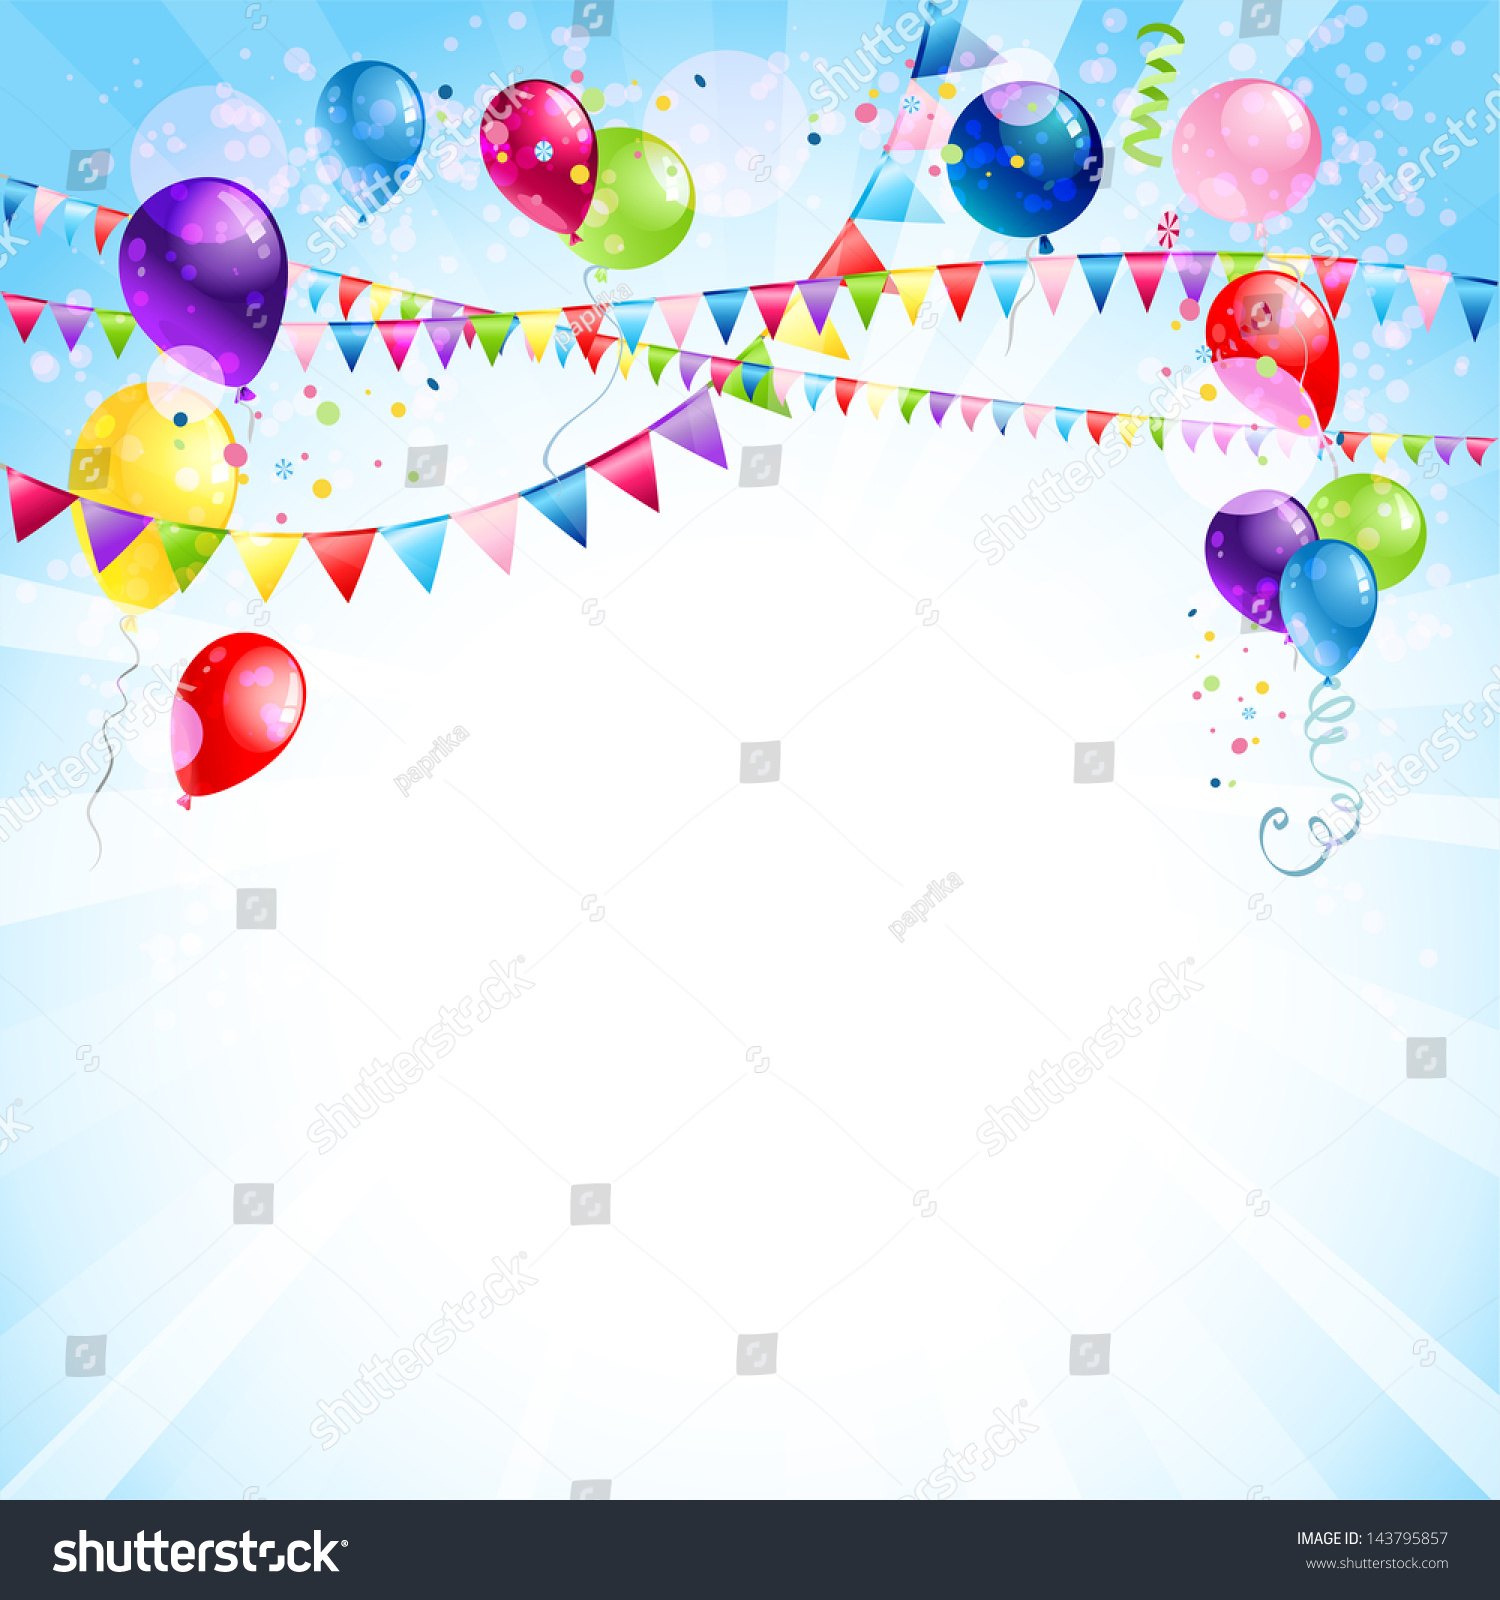 Holiday Background With Colorful Balloons, Hanging Flags And Con ...